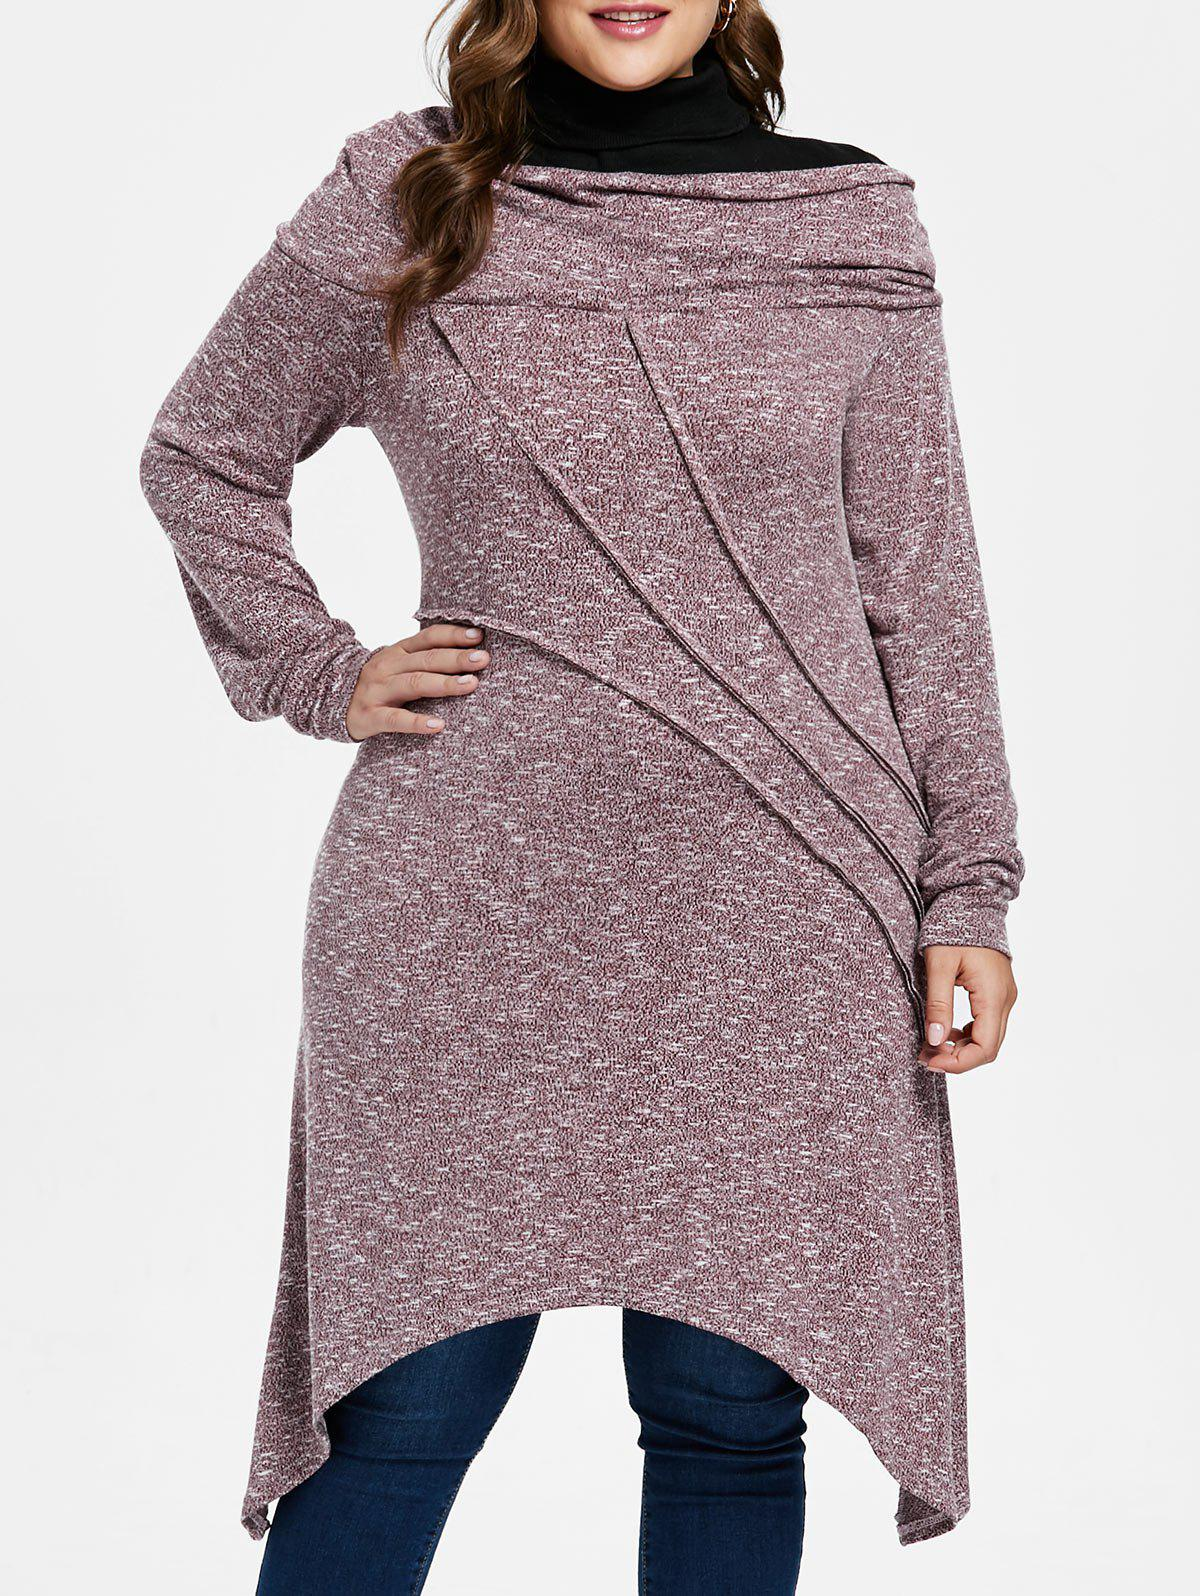 Plus Size Asymmetric Space Dyed Tunic Knitwear